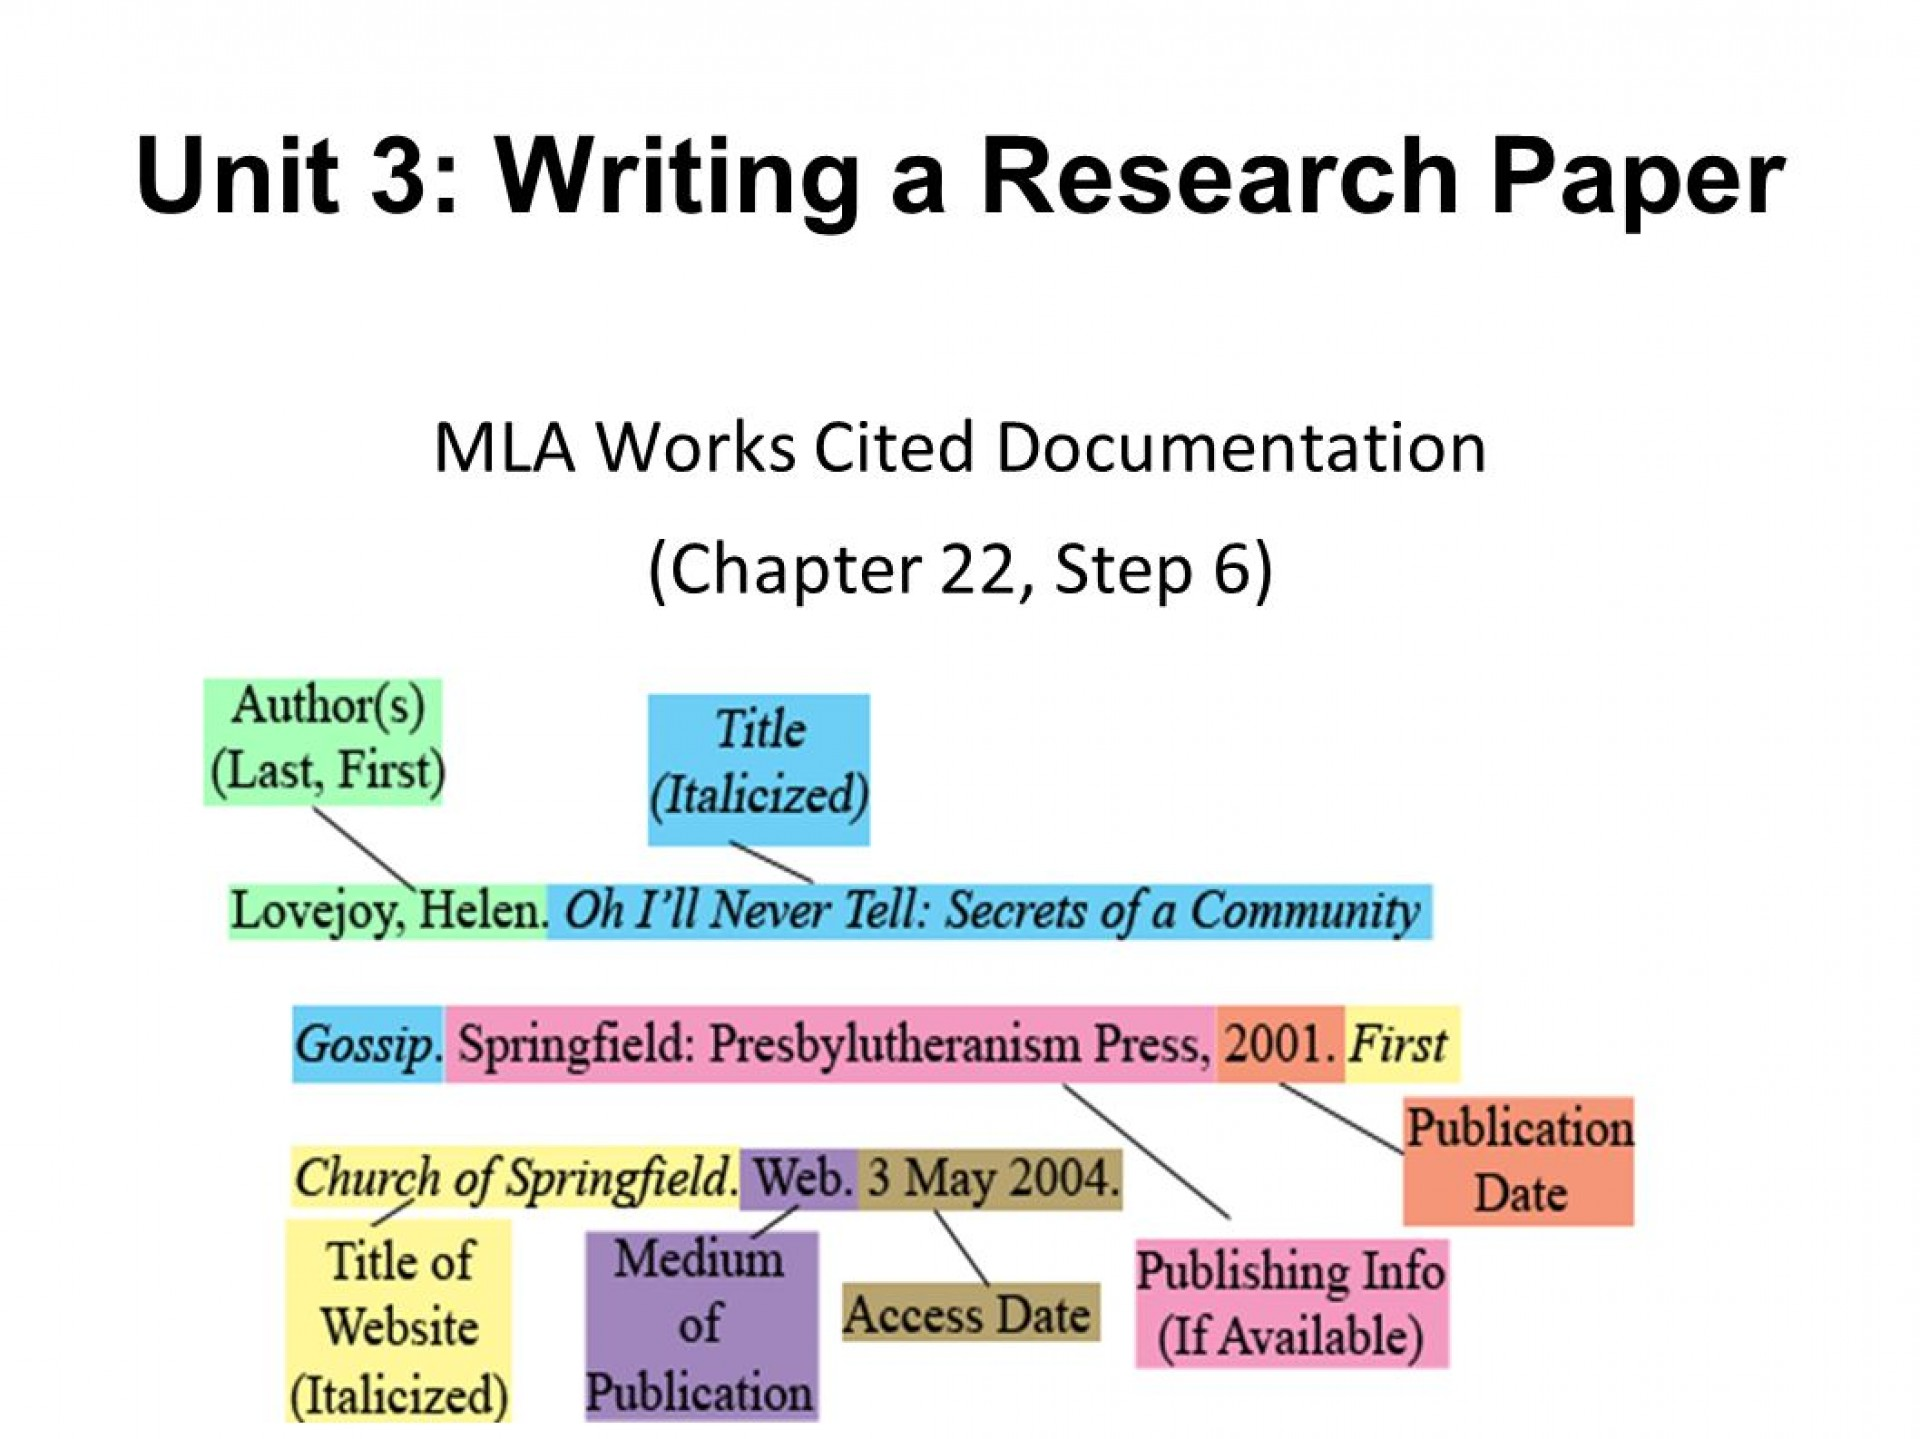 014 Citing Research Paper Mla Slide 1 Impressive A Works Cited How To Cite Website In Your 8 1920